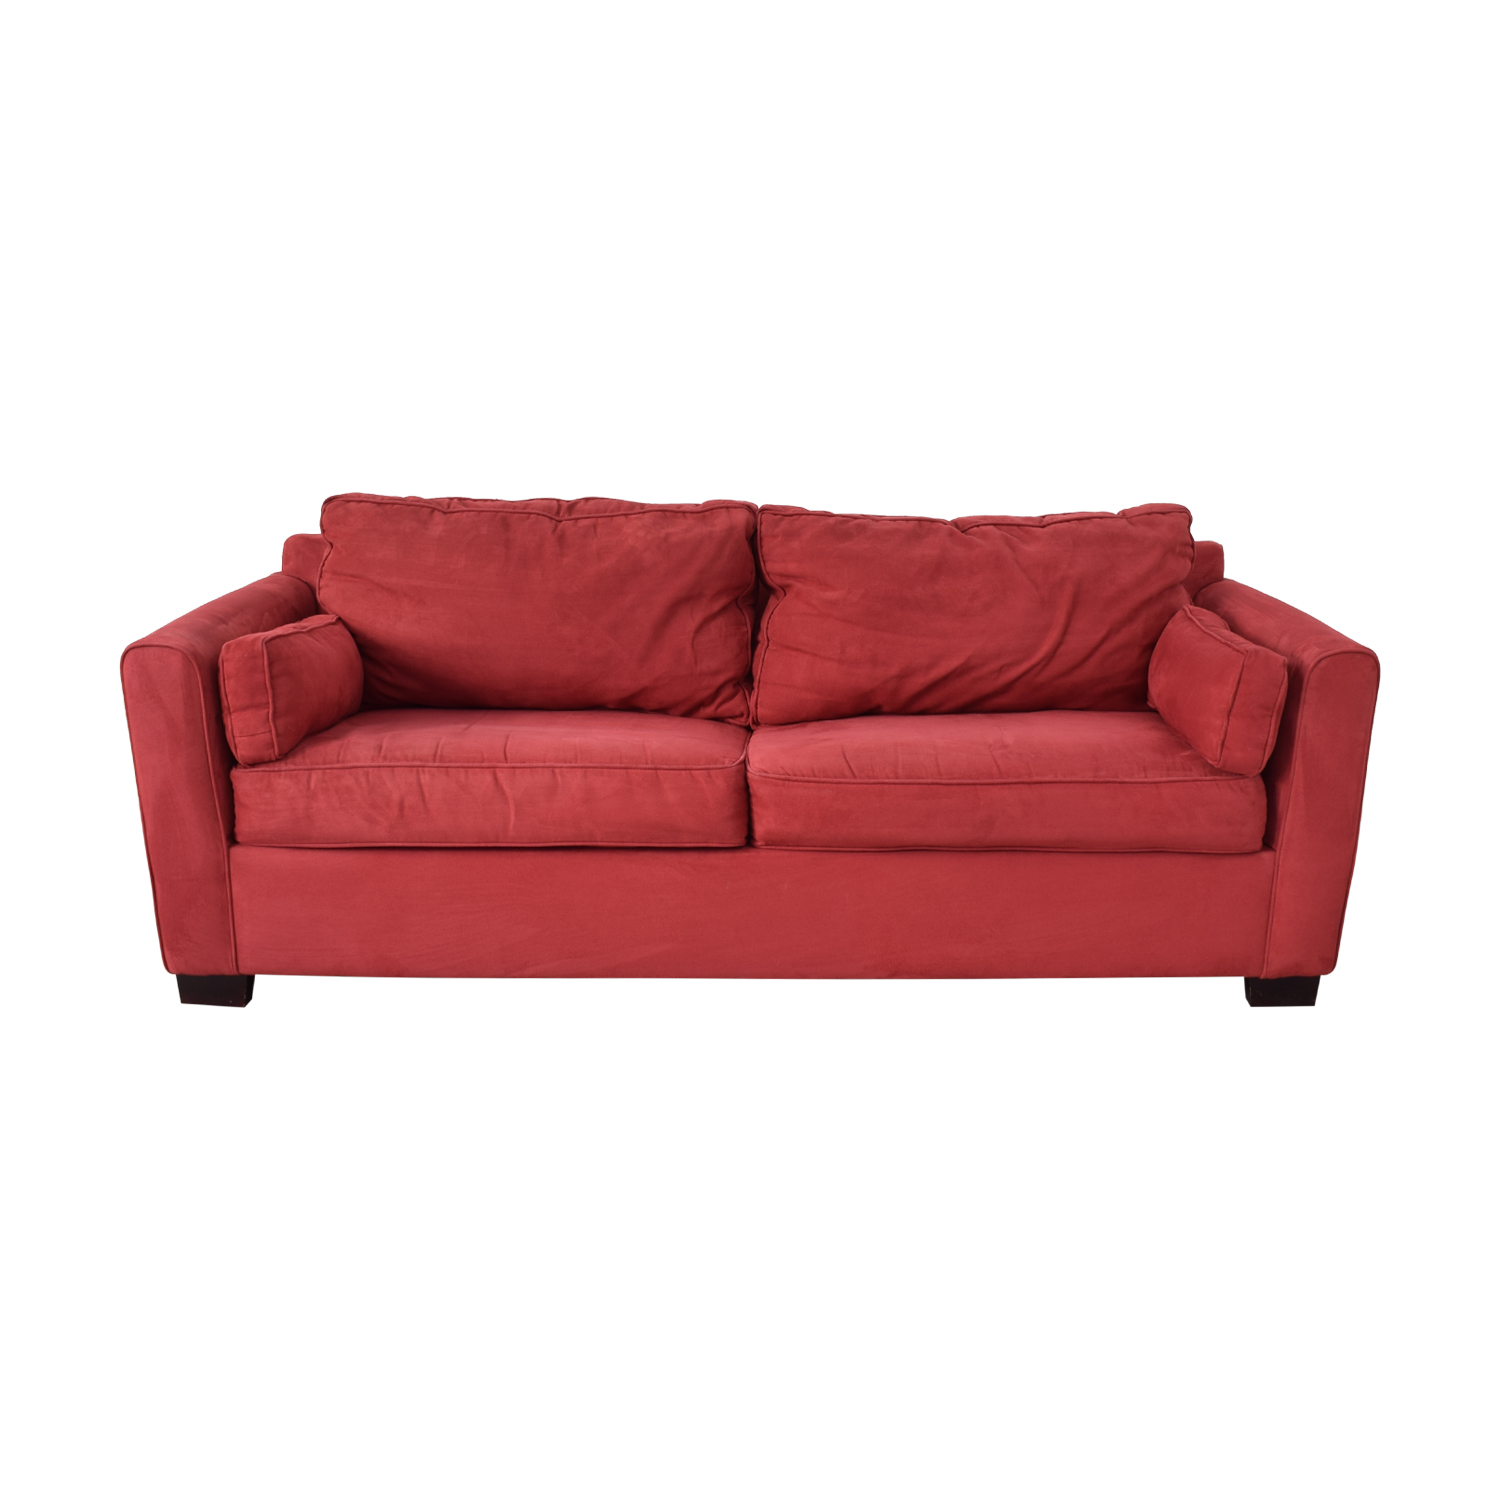 buy Bloomingdale's Red Two-Cushion Convertible Sofa Bloomingdale's Classic Sofas